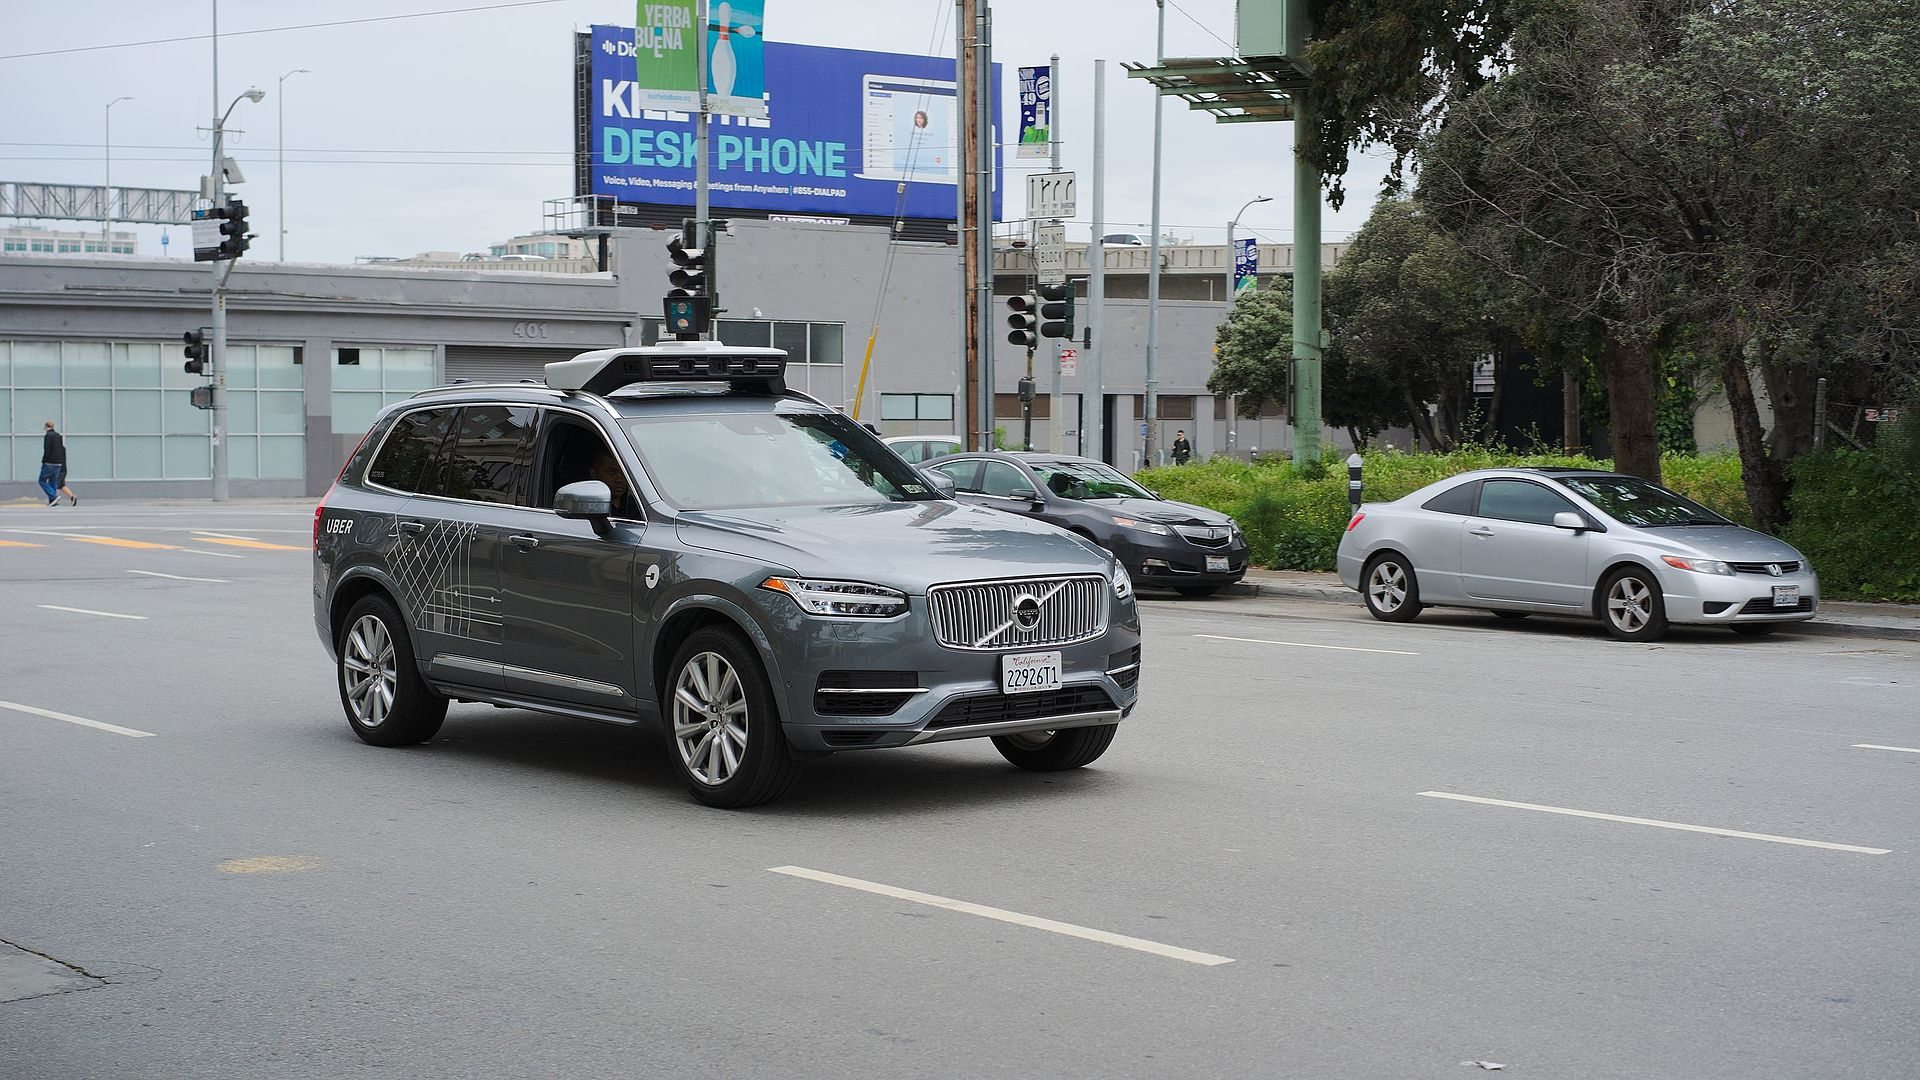 Uber_Self_Driving_Volvo_at_Harrison_at_4th.jpg